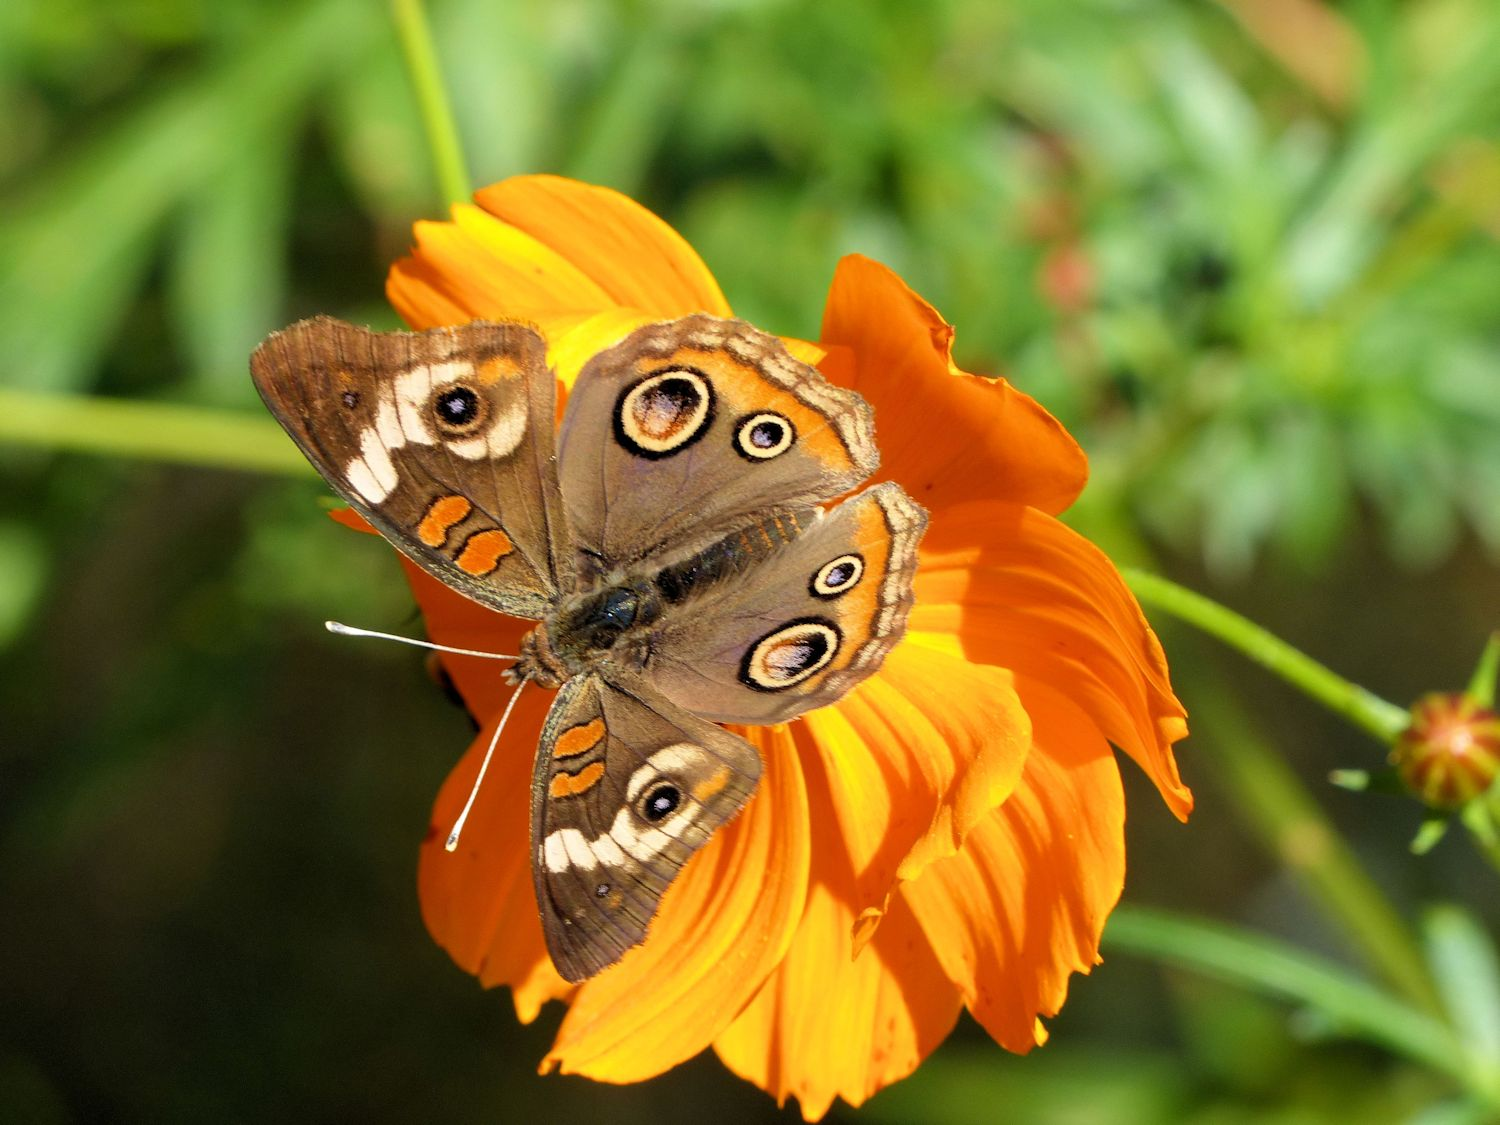 Orange flower and butterfly with eyes